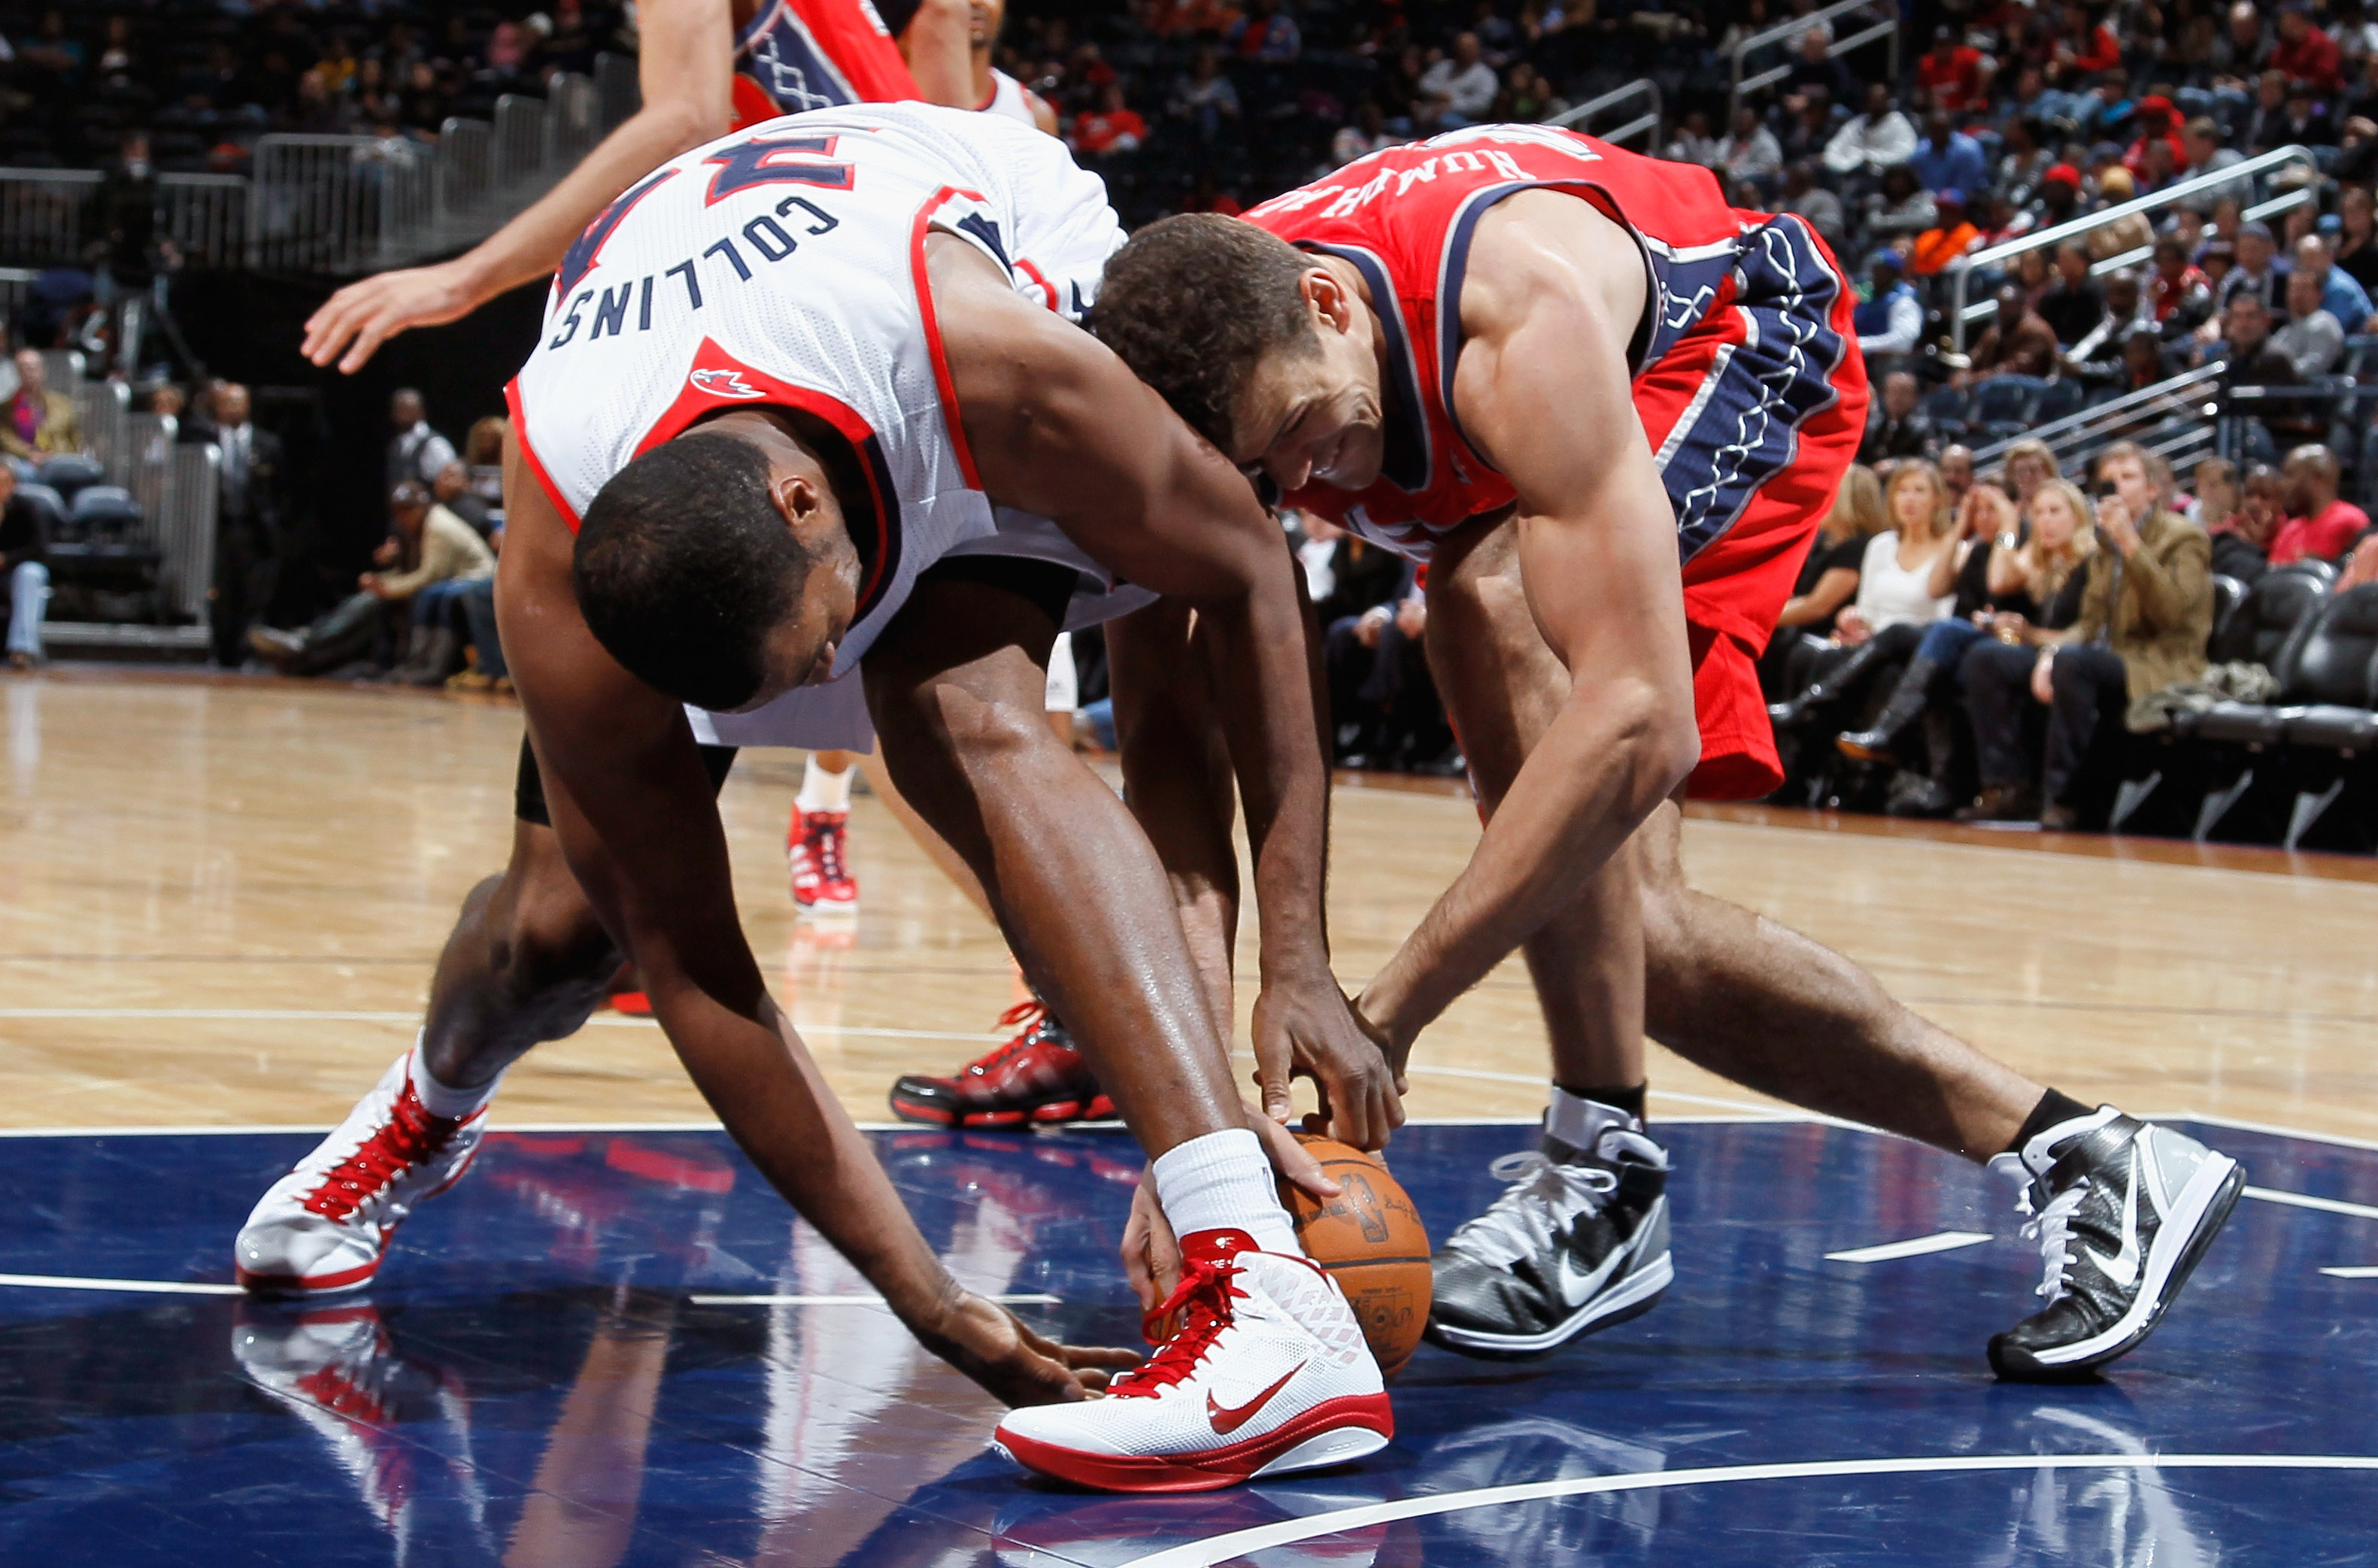 ATLANTA, GA - DECEMBER 07:  Jason Collins #34 of the Atlanta Hawks battles for a loose ball against Kris Humphries #43 of the New Jersey Nets at Philips Arena on December 7, 2010 in Atlanta, Georgia.  NOTE TO USER: User expressly acknowledges and agrees t